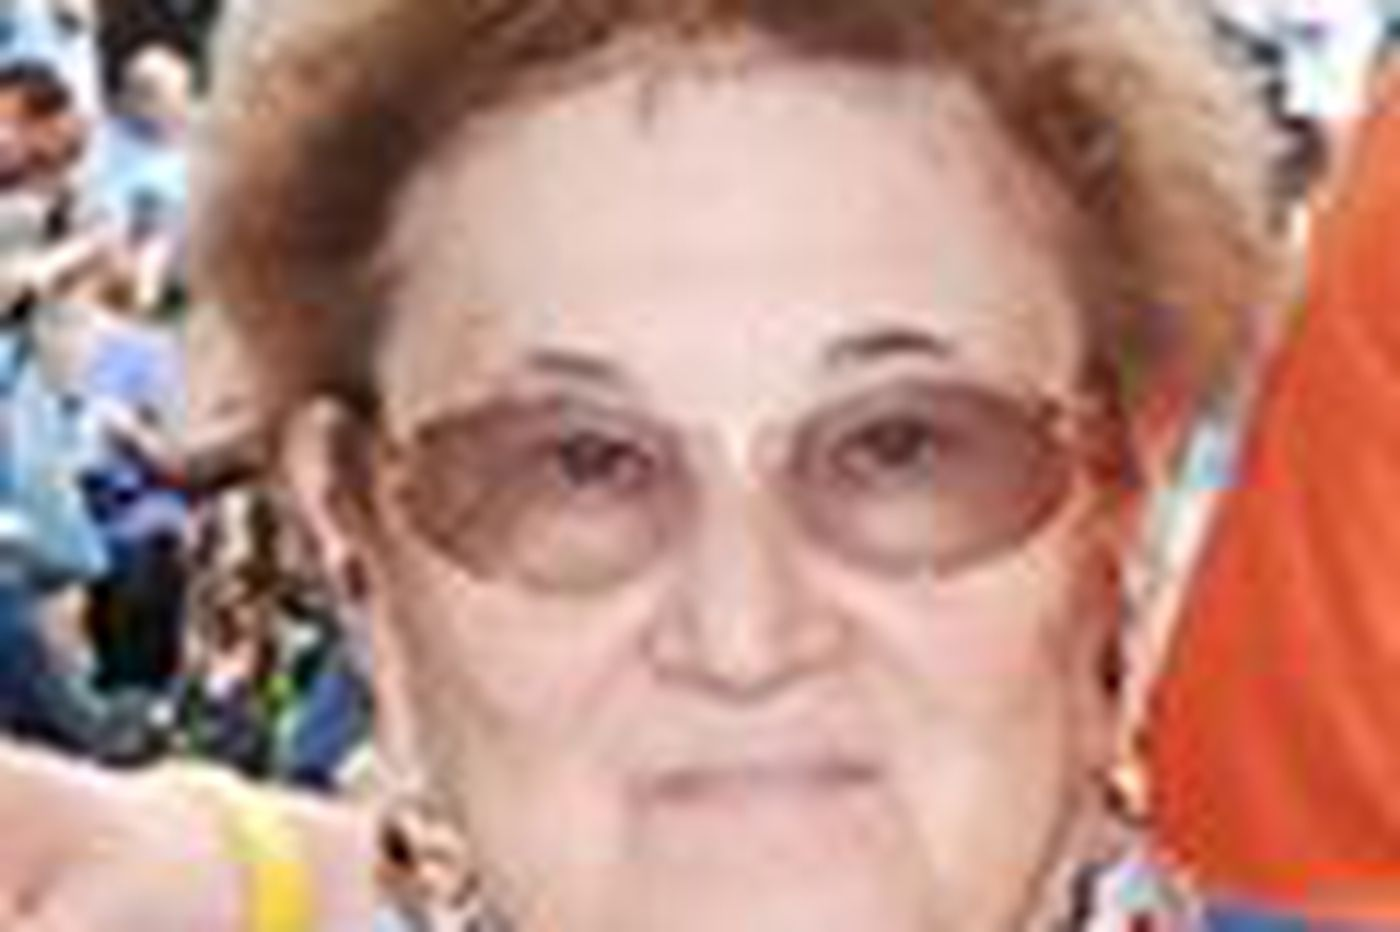 Elaine Hoffman Watts, 85, who performed klezmer folk music